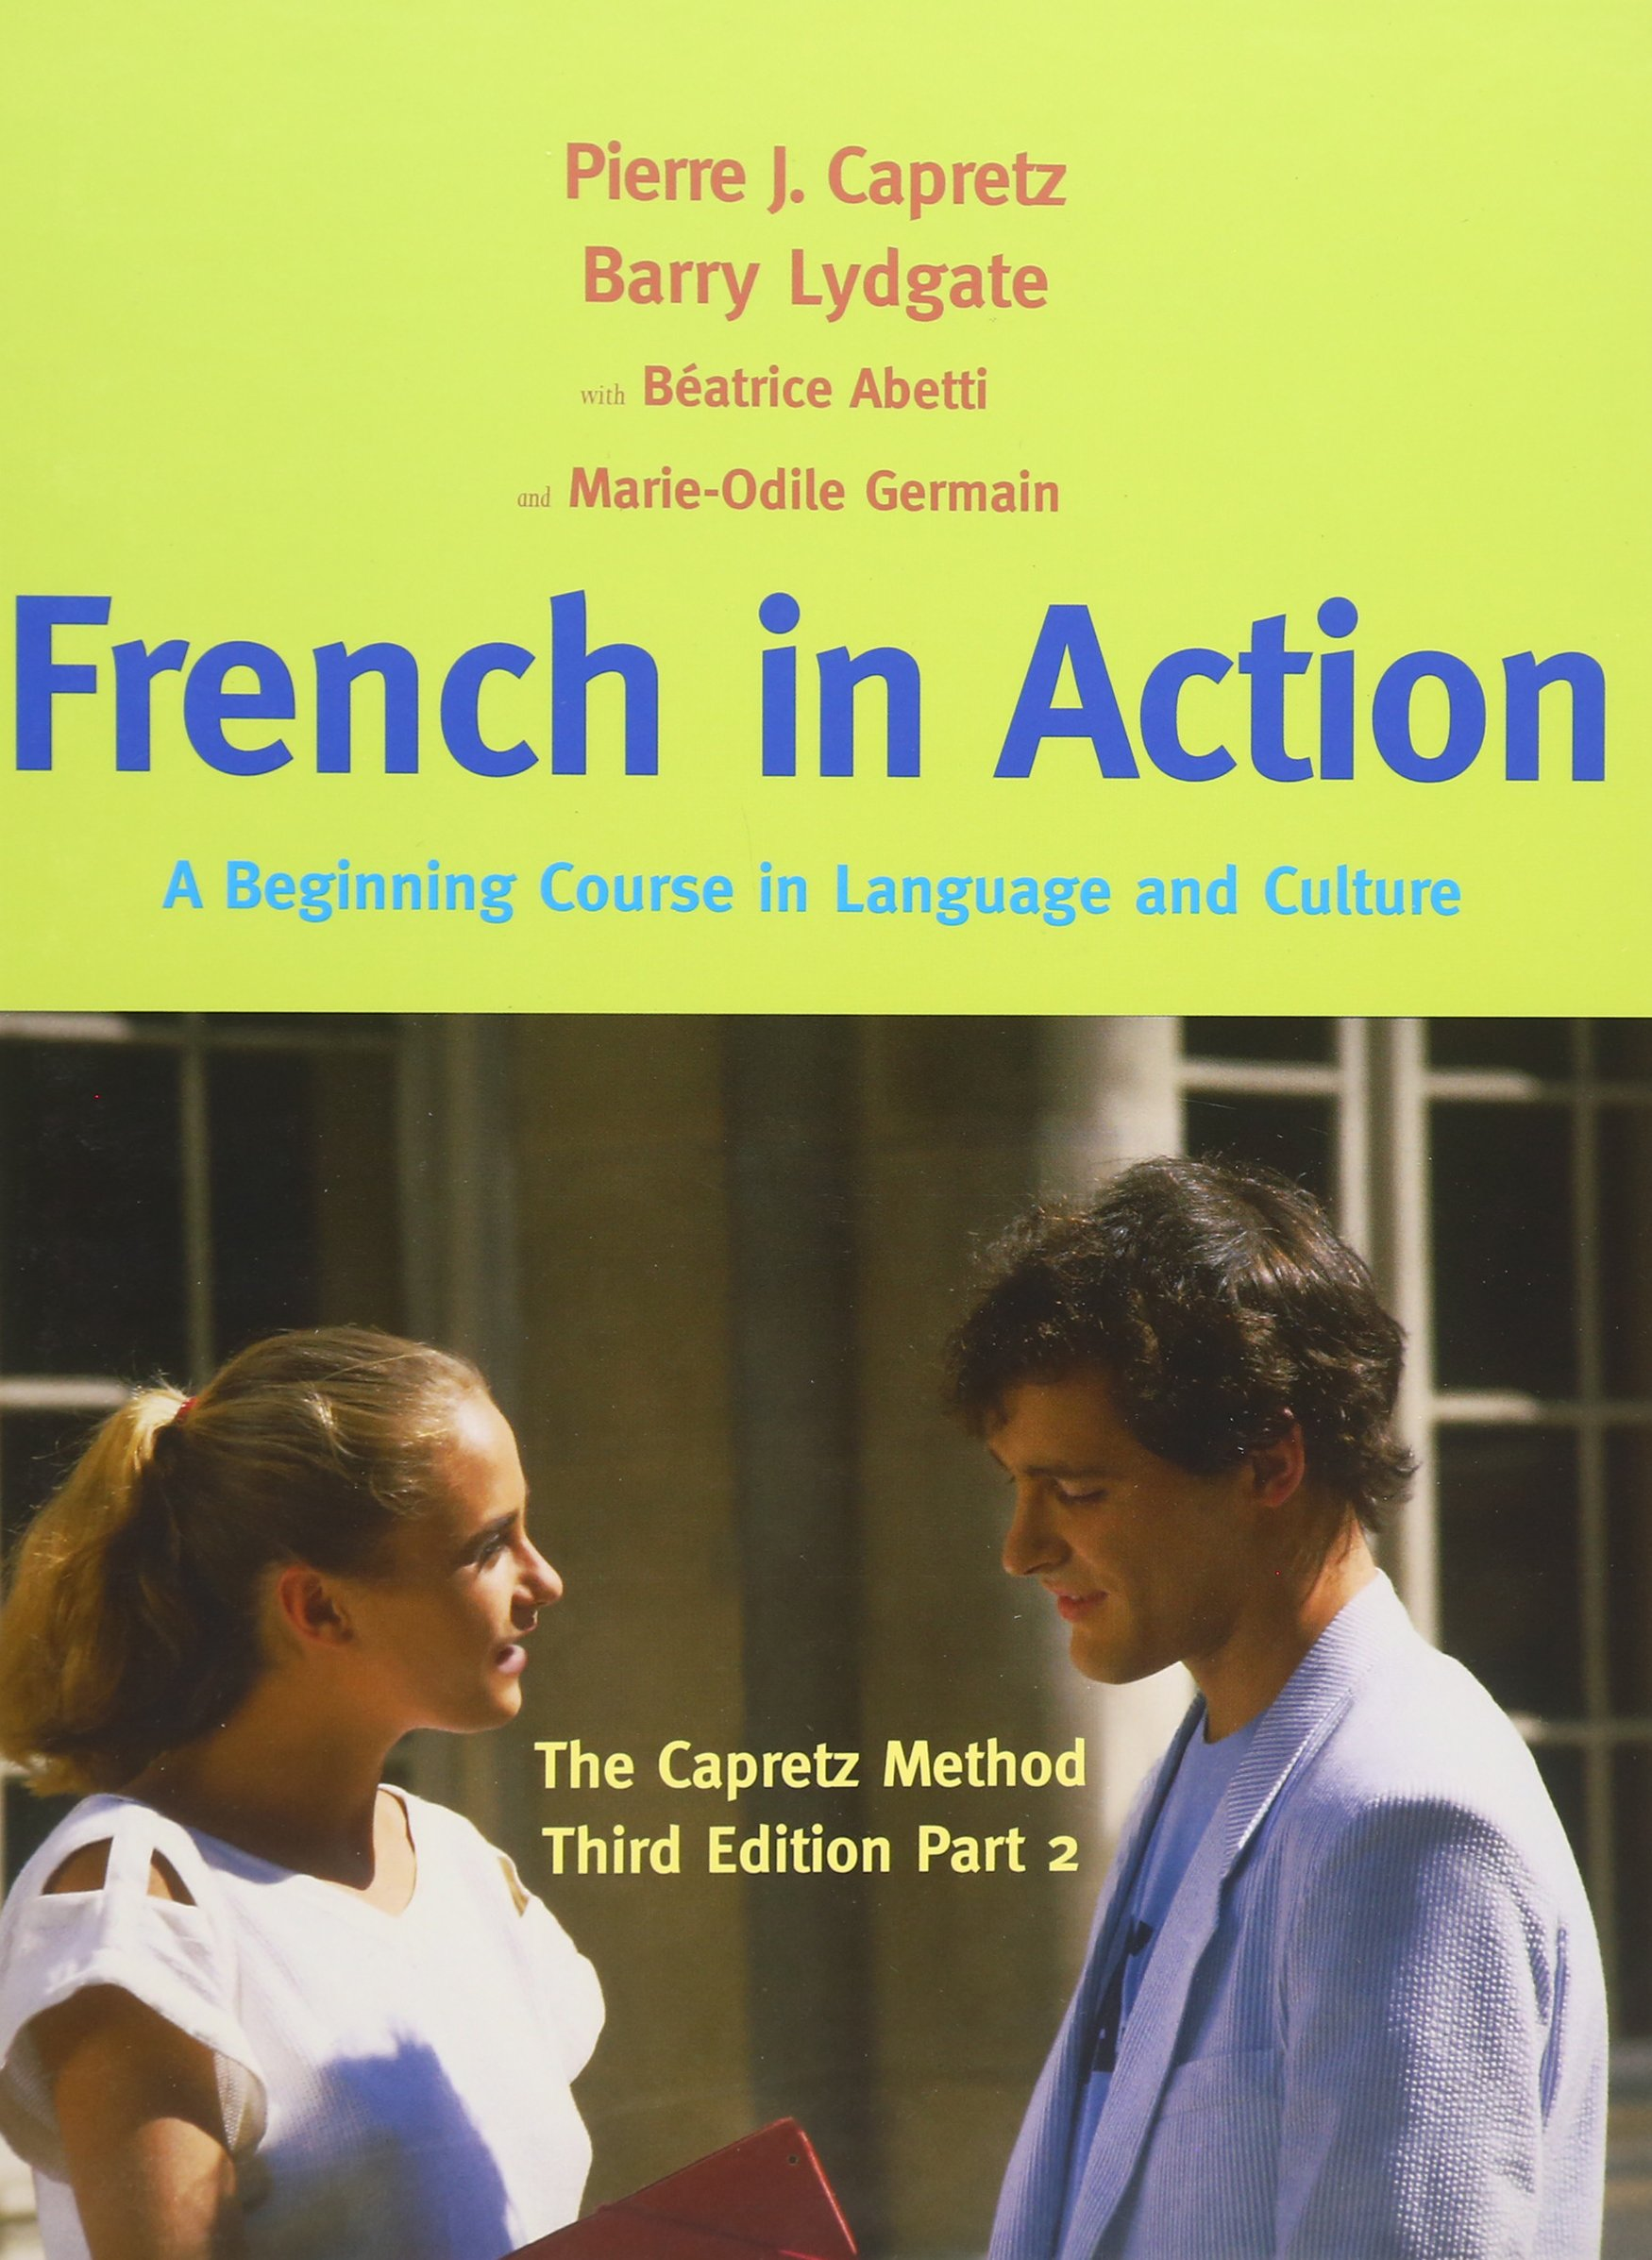 French in Action: A Beginning Course in Language and Culture: The Capretz Method, Third Edition, Part 2 by Yale University Press